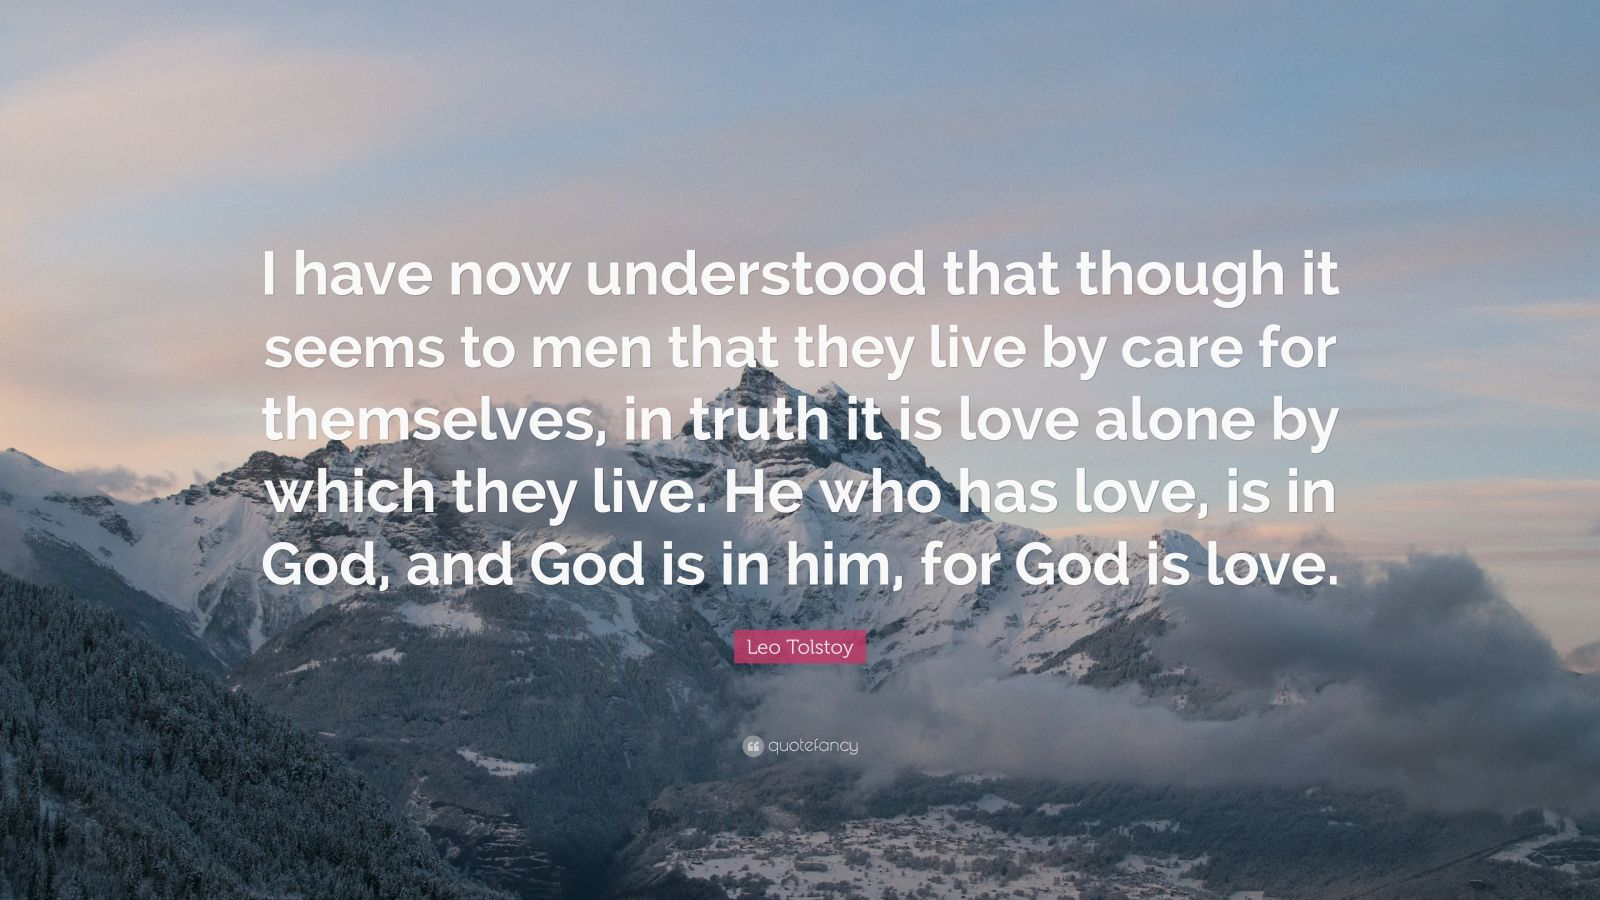 """Leo Tolstoy Quote: """"I have now understood that though it seems to men that they live by care for themselves, in truth it is love alone by which they live. He who has love, is in God, and God is in him, for God is love."""""""